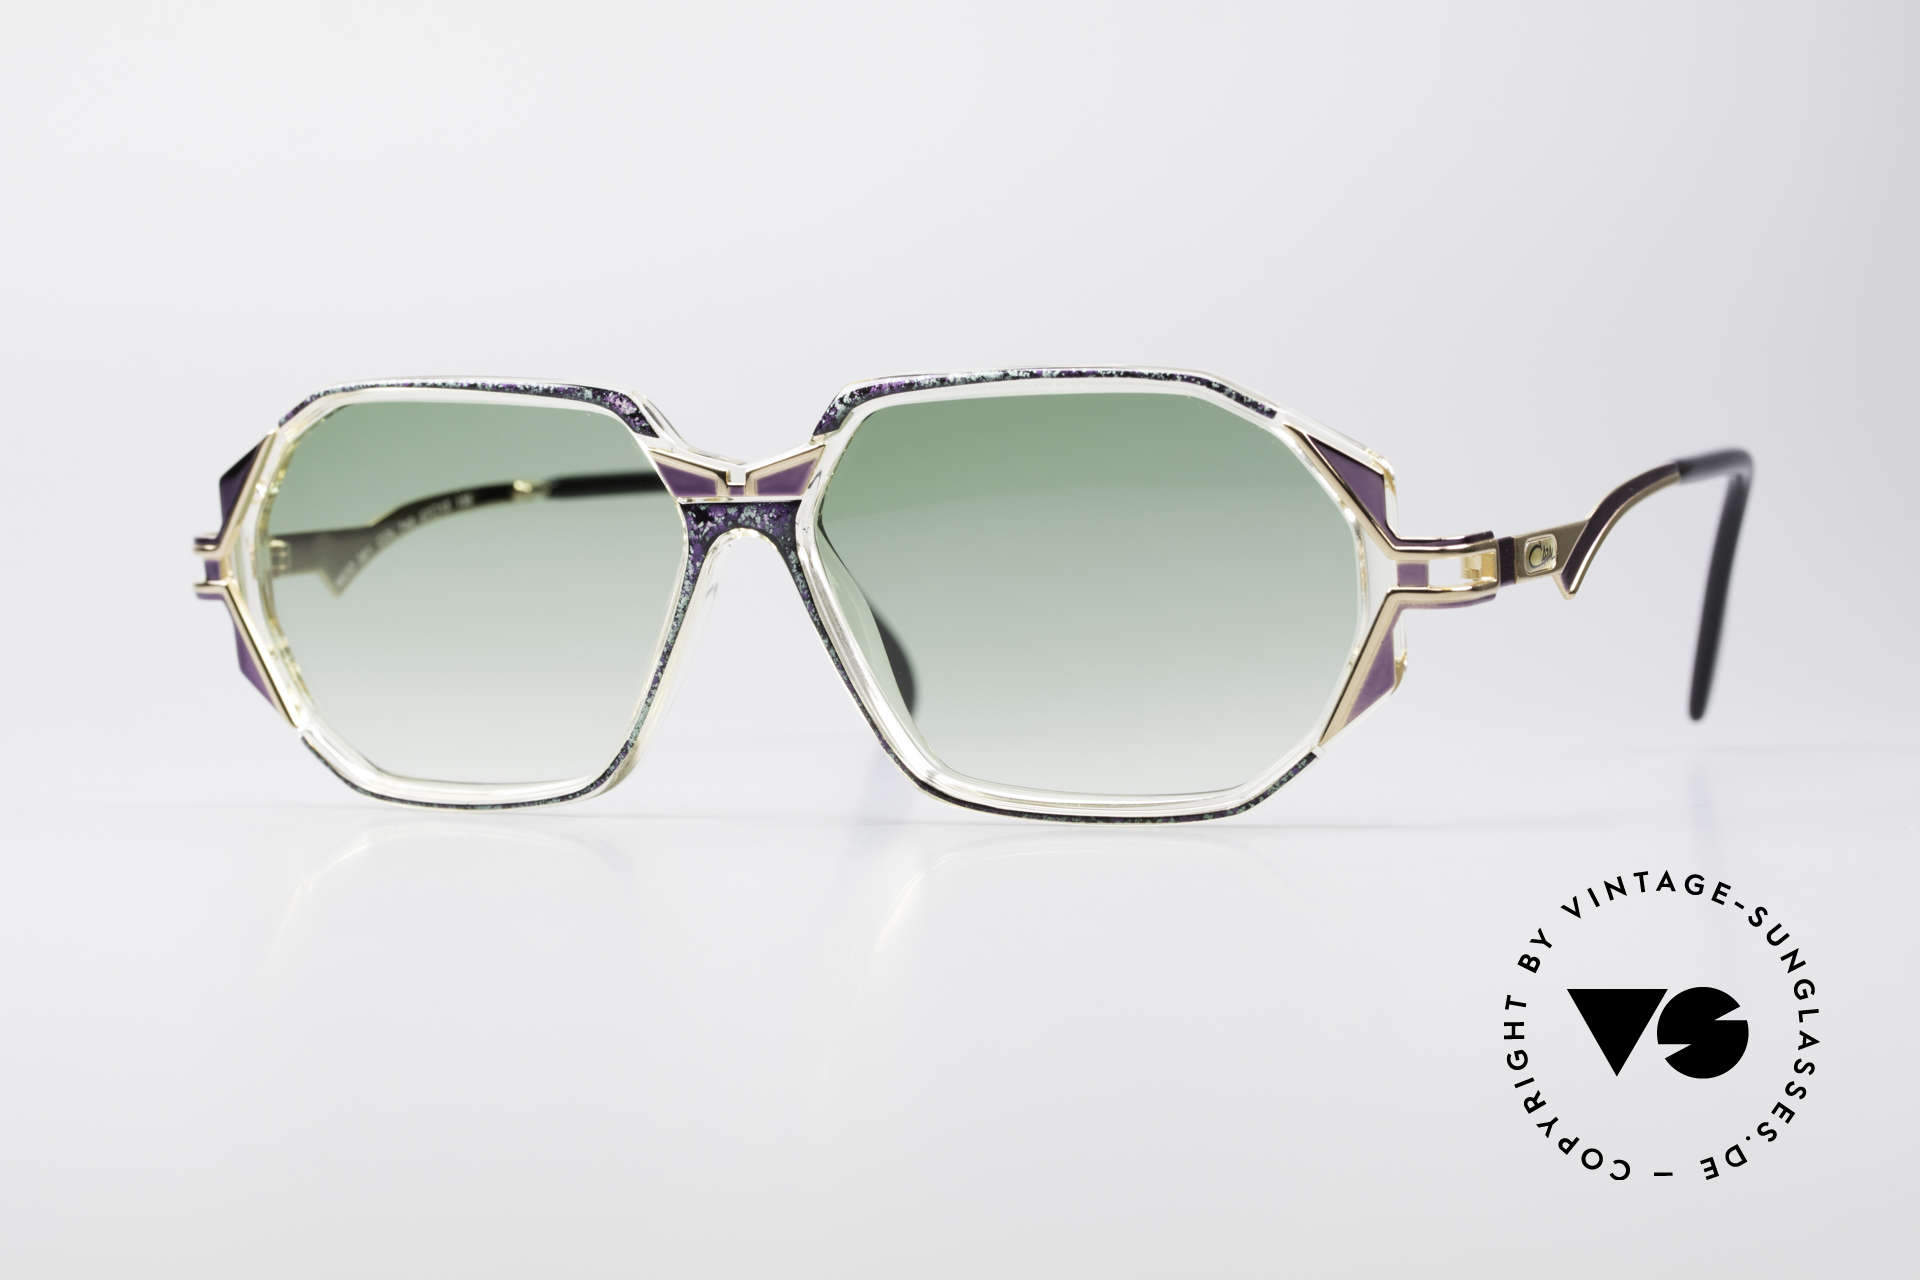 Cazal 361 Original Ladies 90s Sunglasses, adorned CAZAL sunglasses from the early / mid 1990's, Made for Women